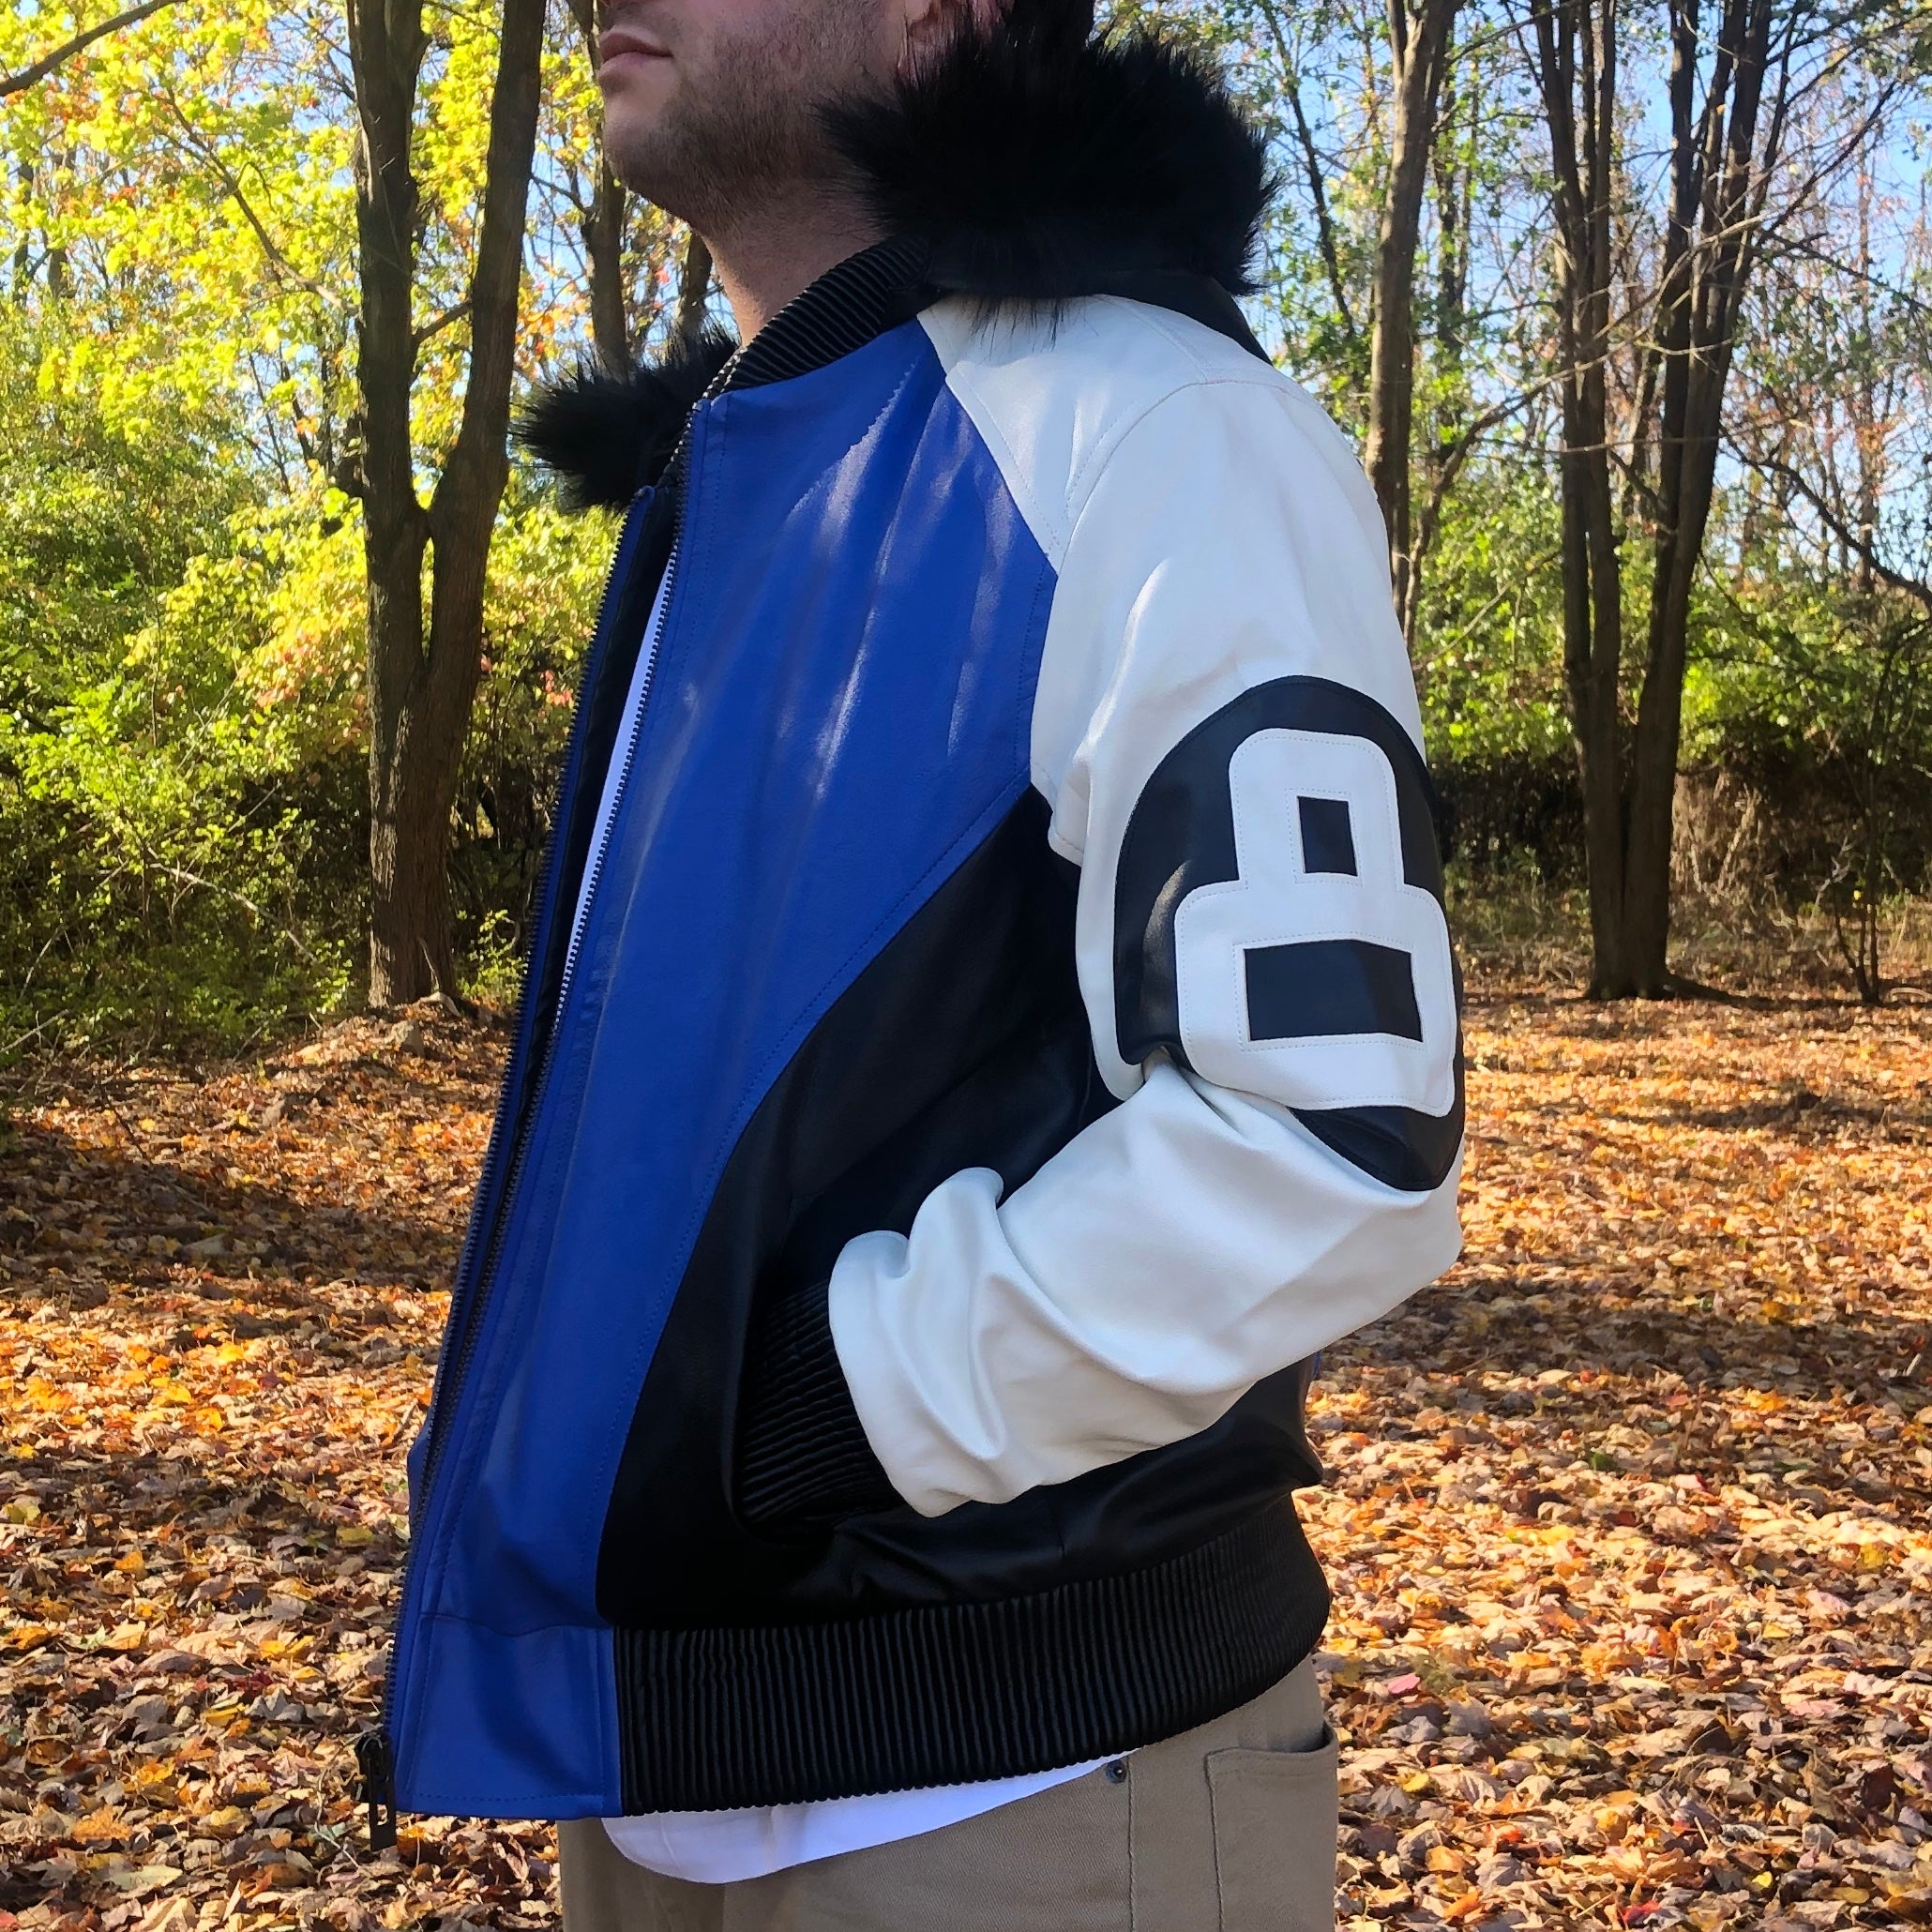 8 BALL LEATHER JACKET - ROYAL BLUE